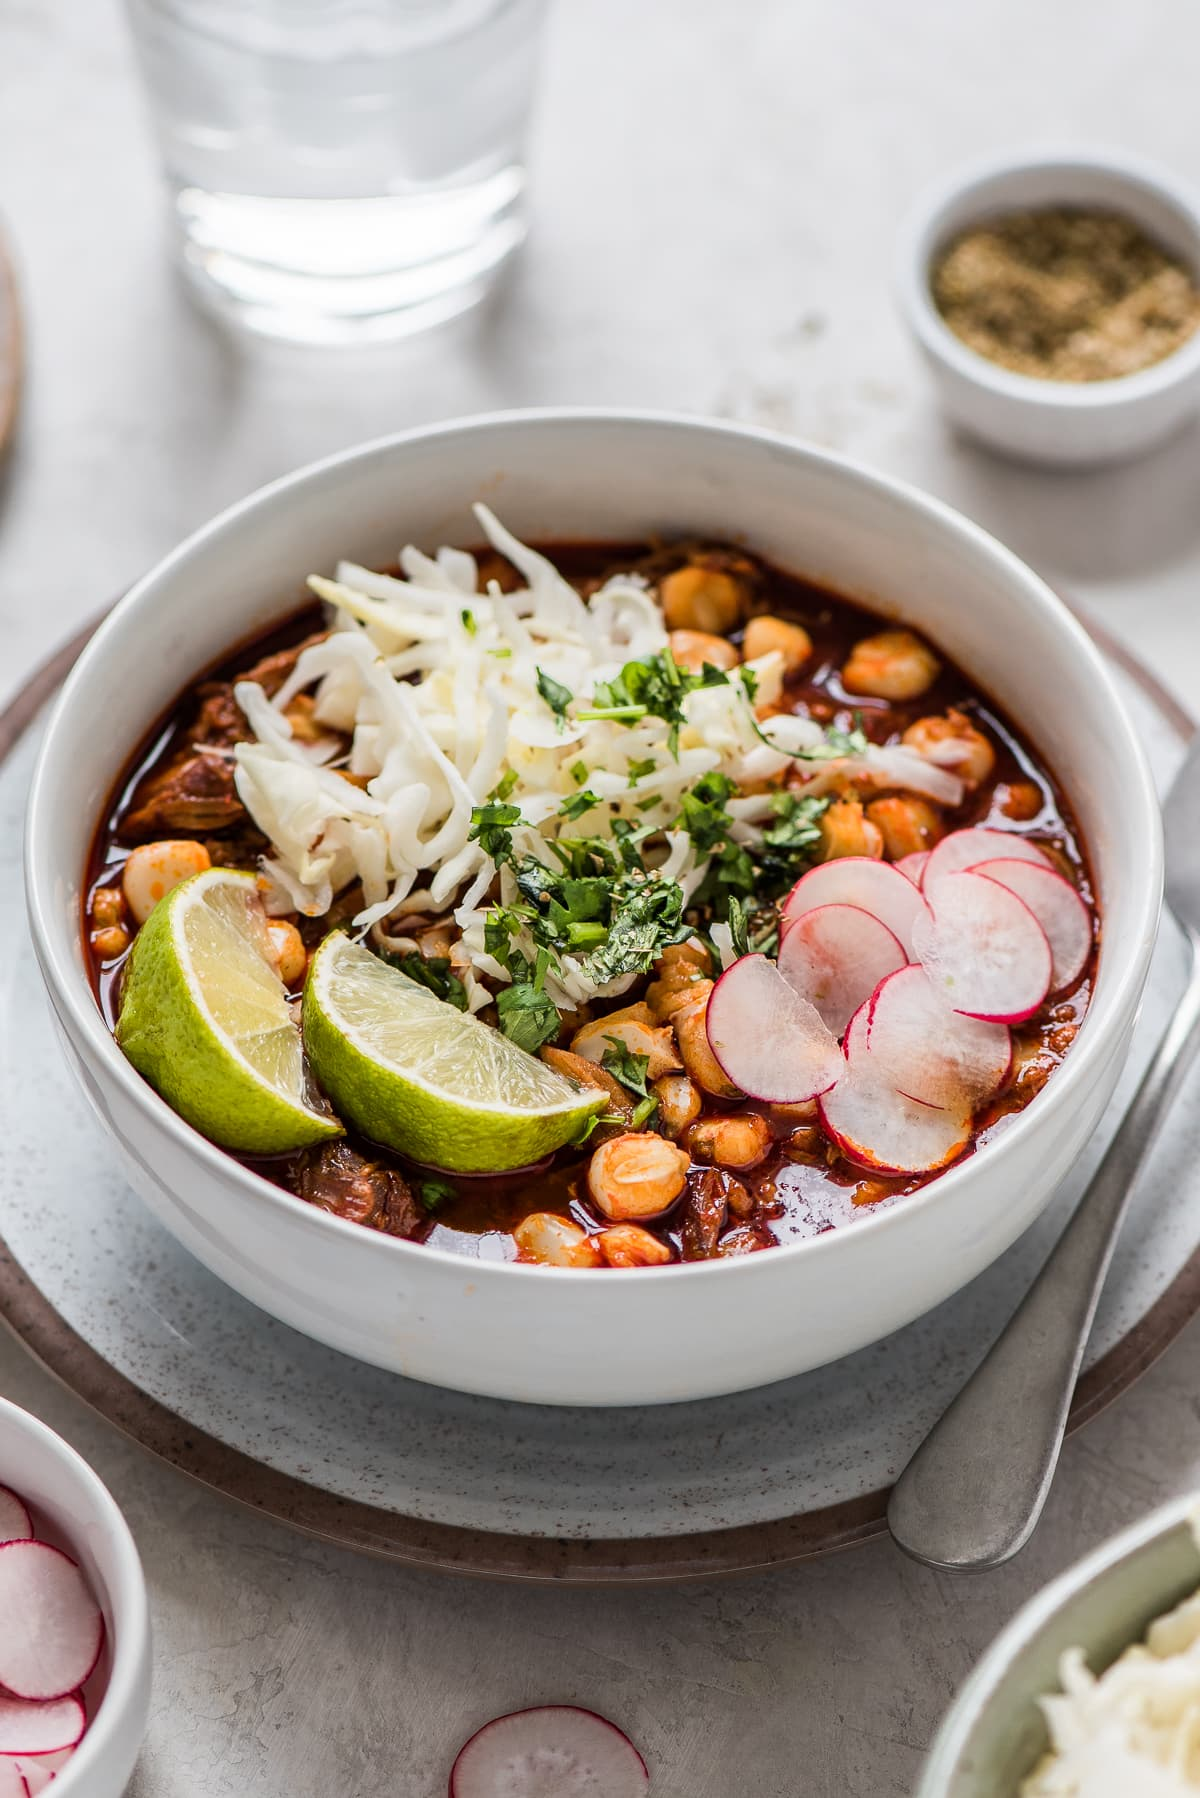 Red posole in a bowl topped with sliced radishes, cilantro, and more toppings.